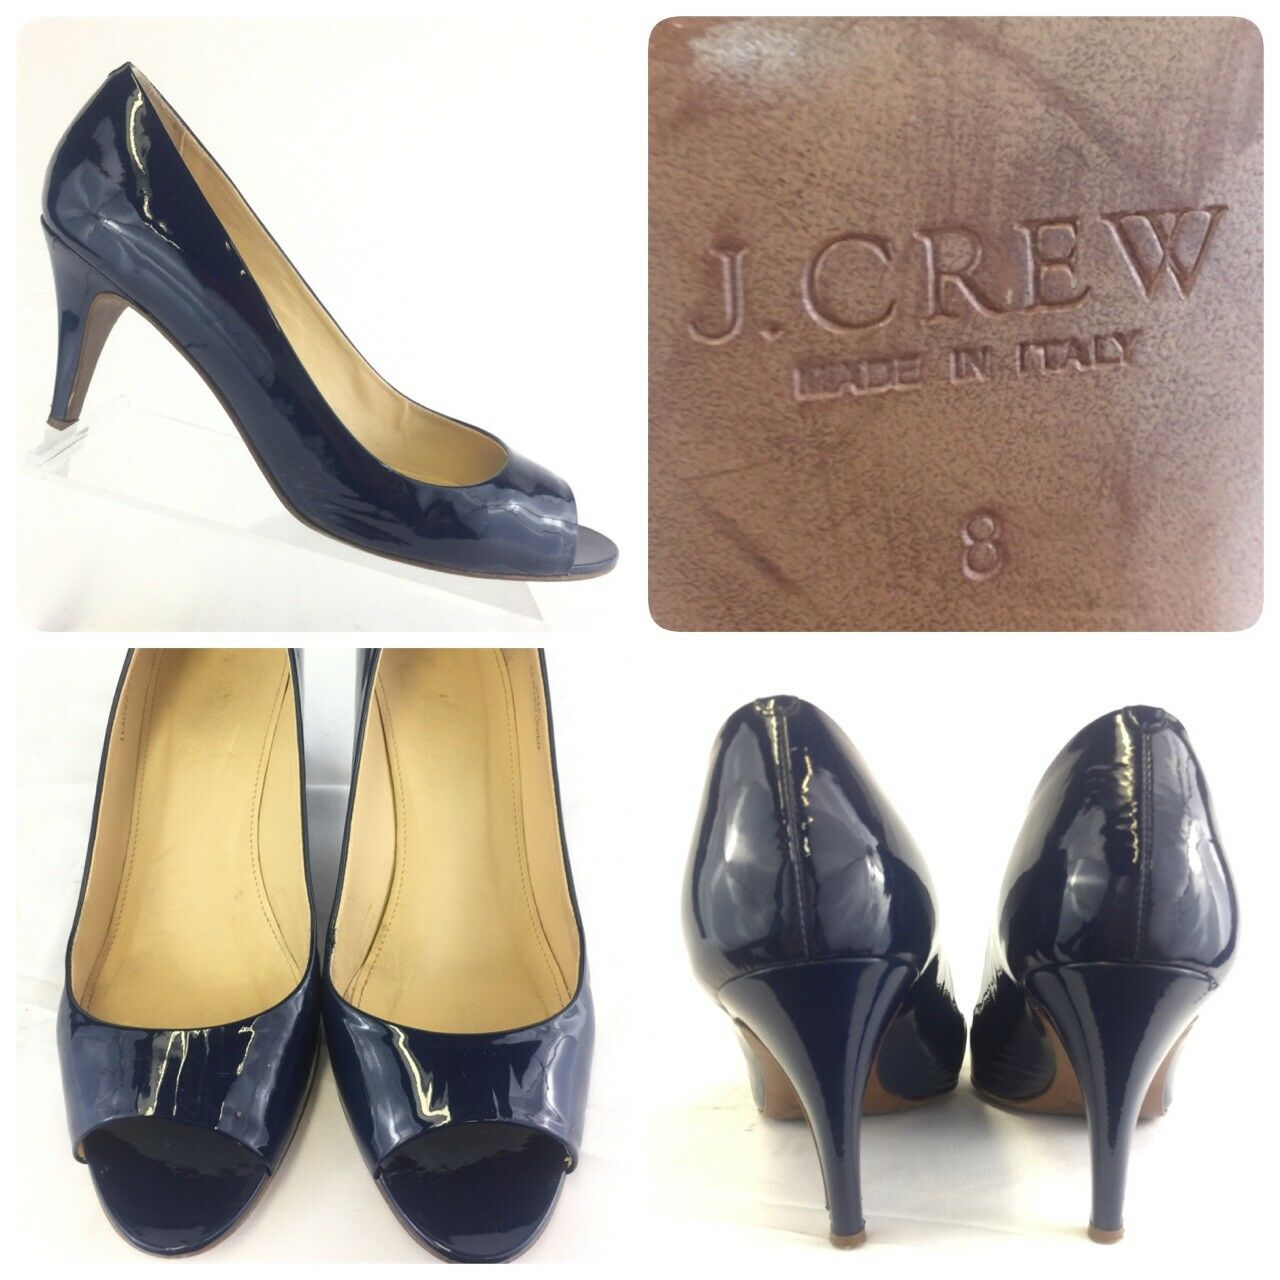 J.Crew Women's 8 Drea Patent Lather Peep Toe Heels Pumps shoes bluee 64452